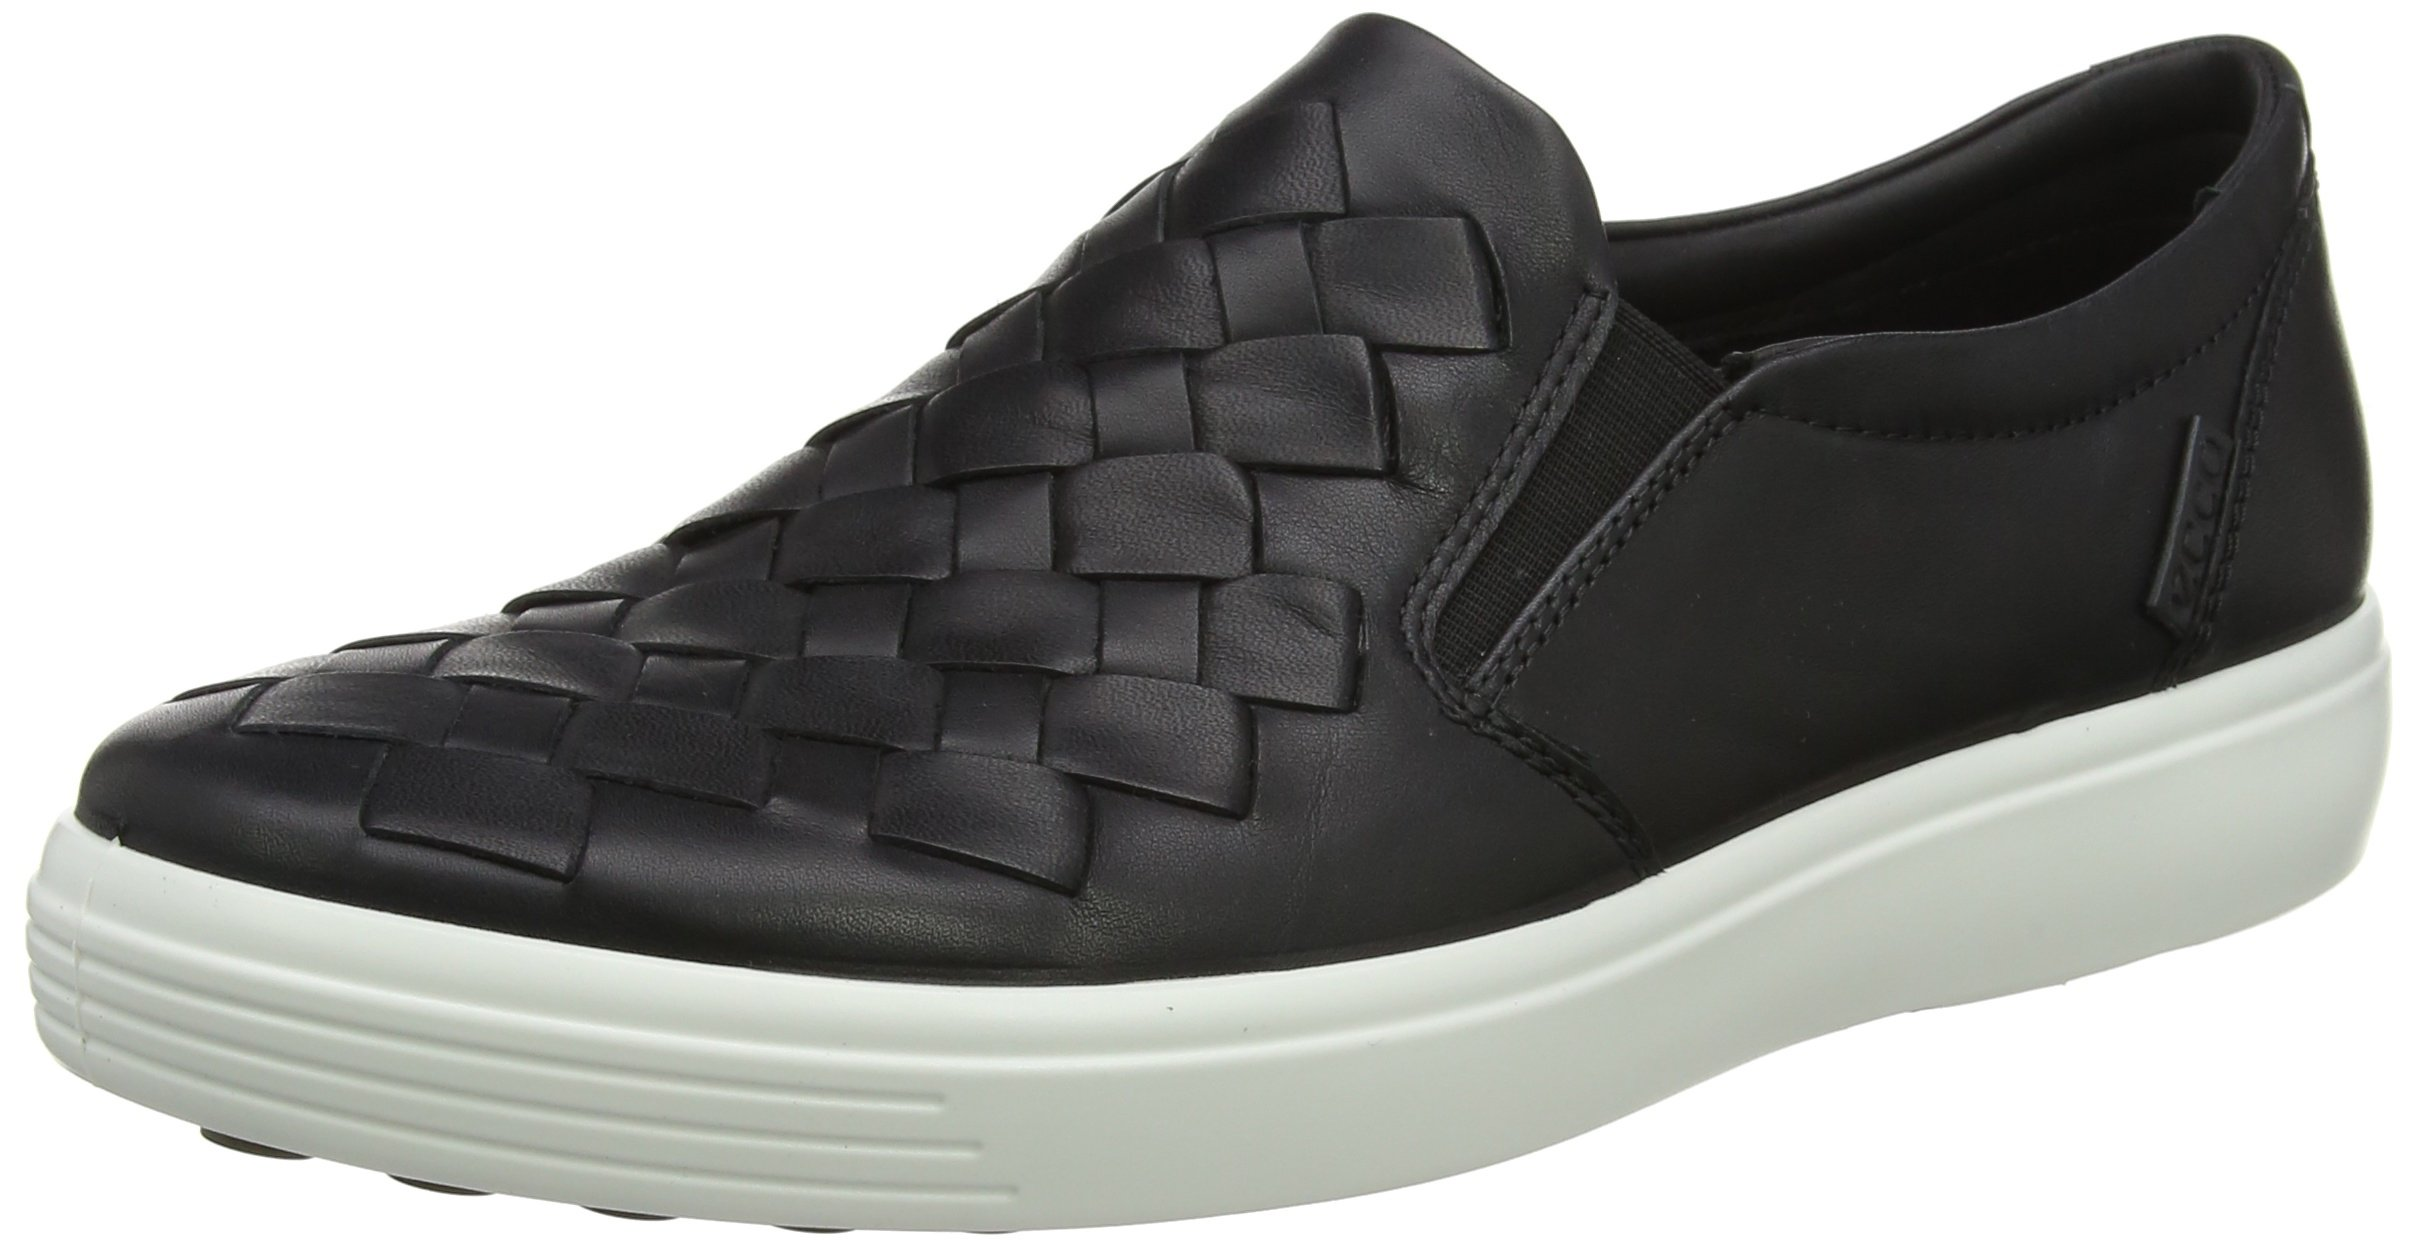 ECCO Men's Soft 7 Woven Slip On Fashion Sneaker, Black, 42 EU/8-8.5 M US by ECCO